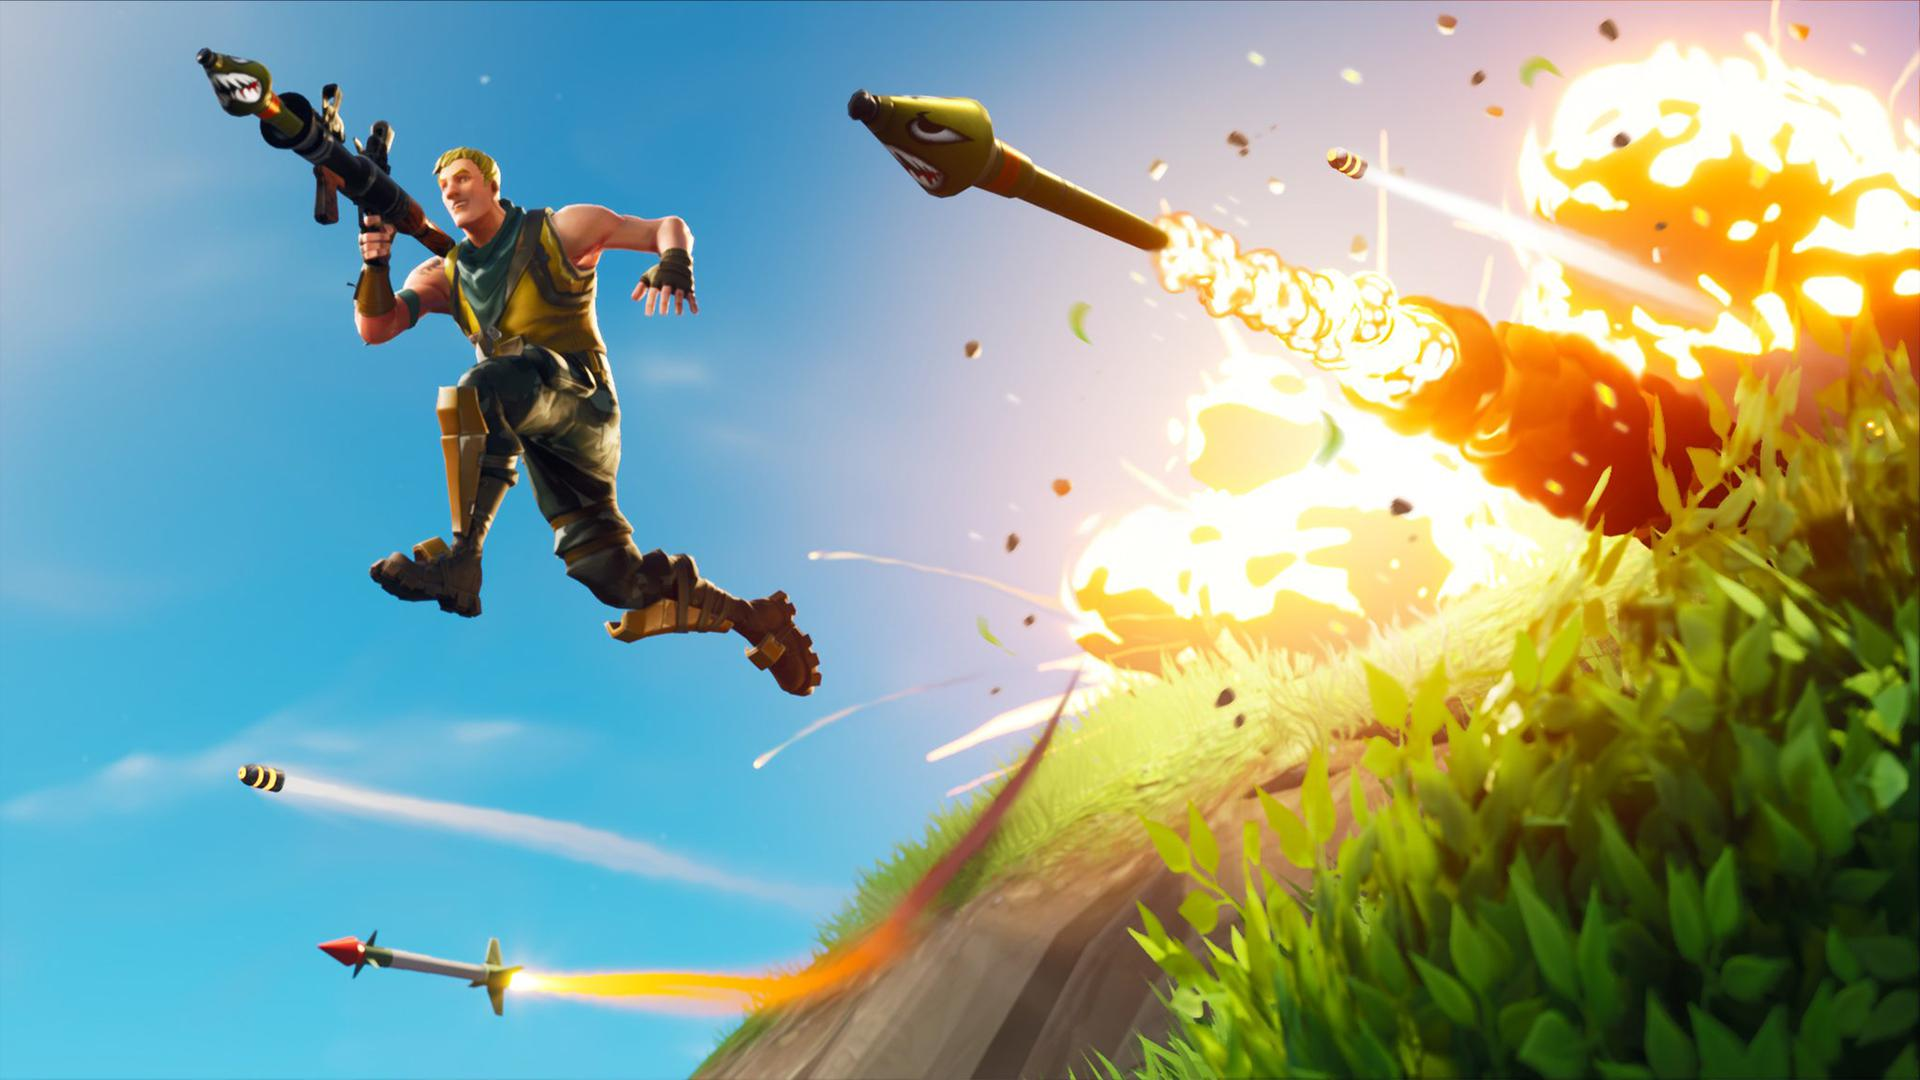 Fortnite Hd Wallpapers Background Images Wallpaper